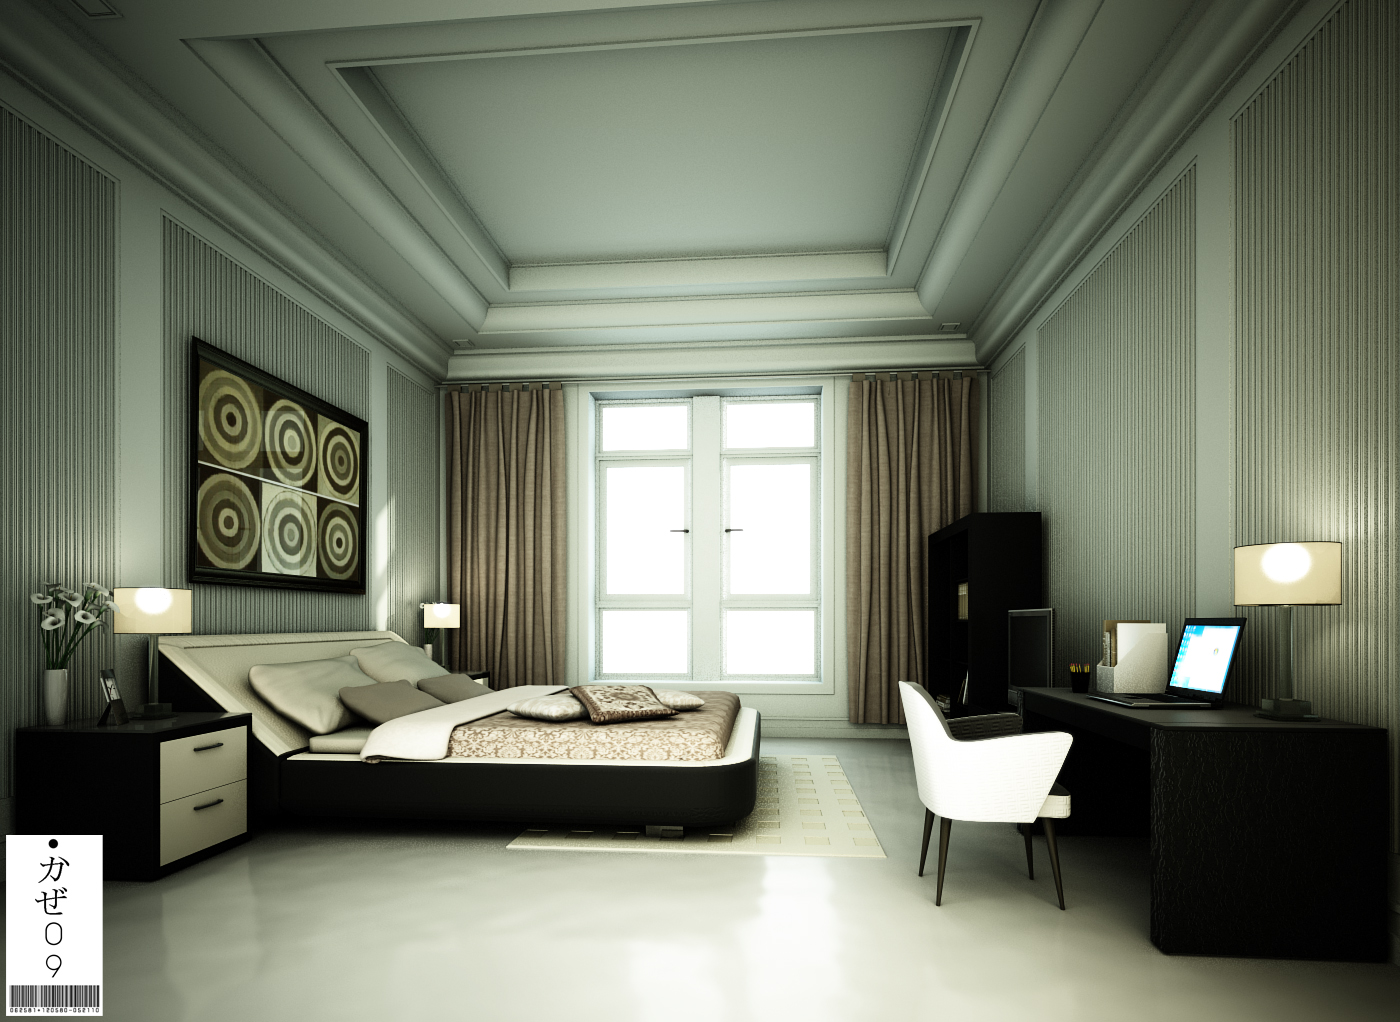 Modern classic by kaze09 on deviantart for Classic bedroom ideas